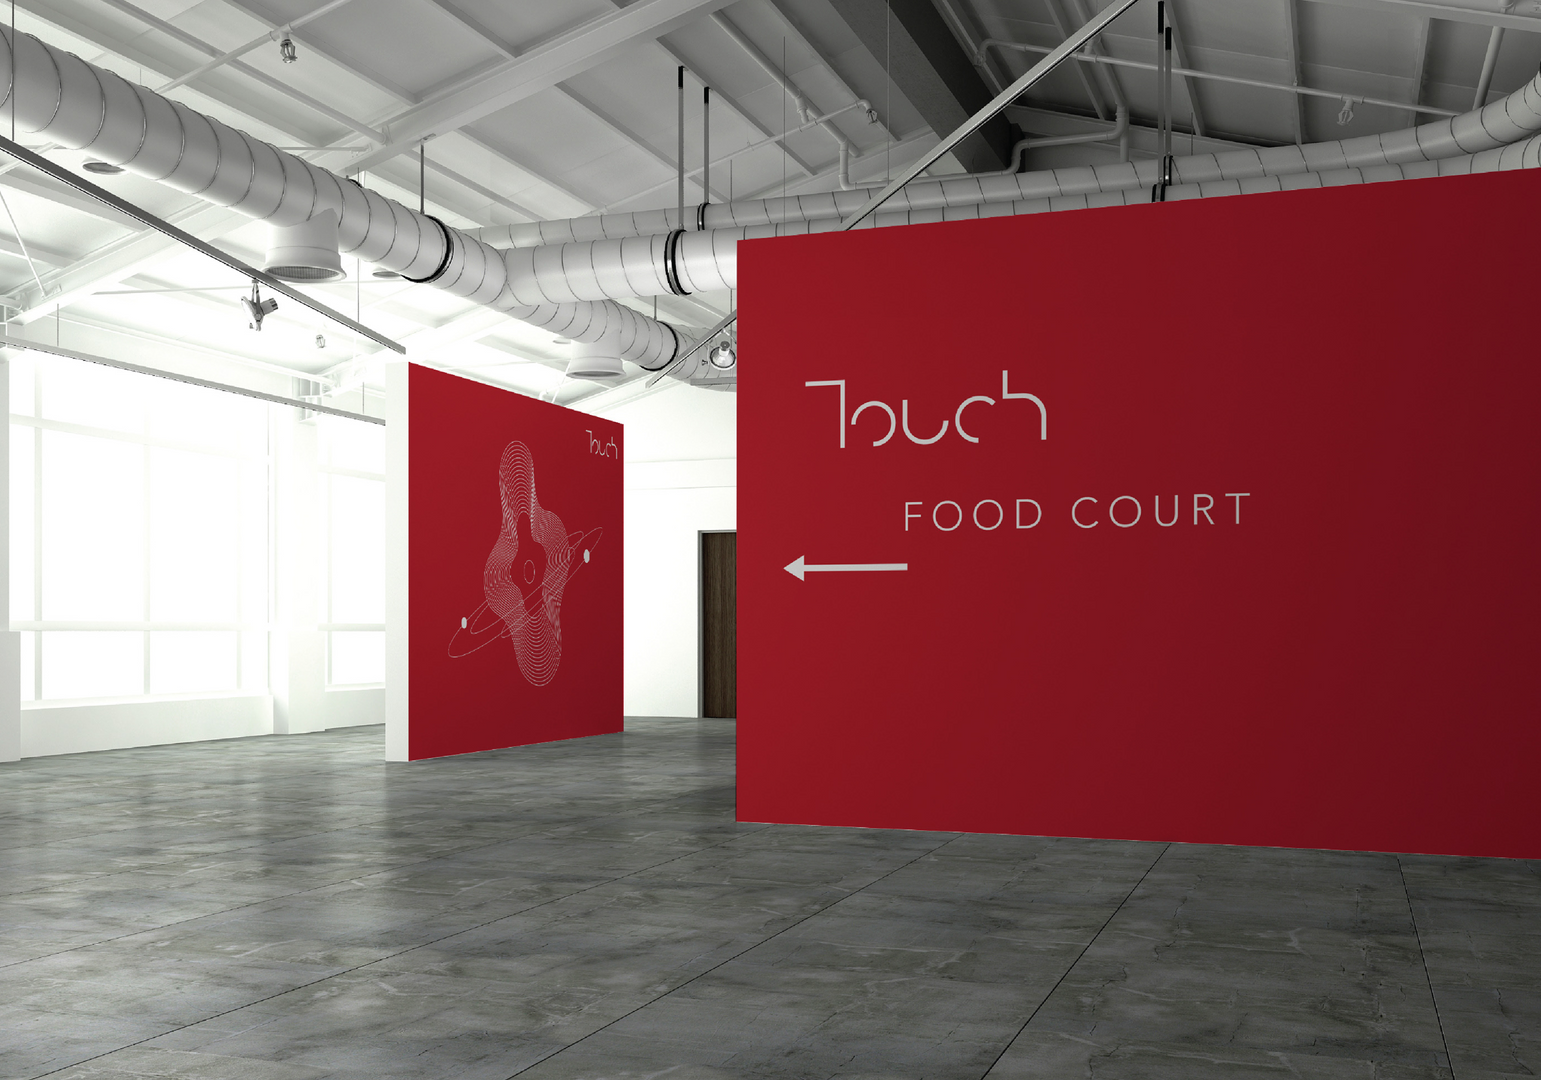 touch venue food court sign